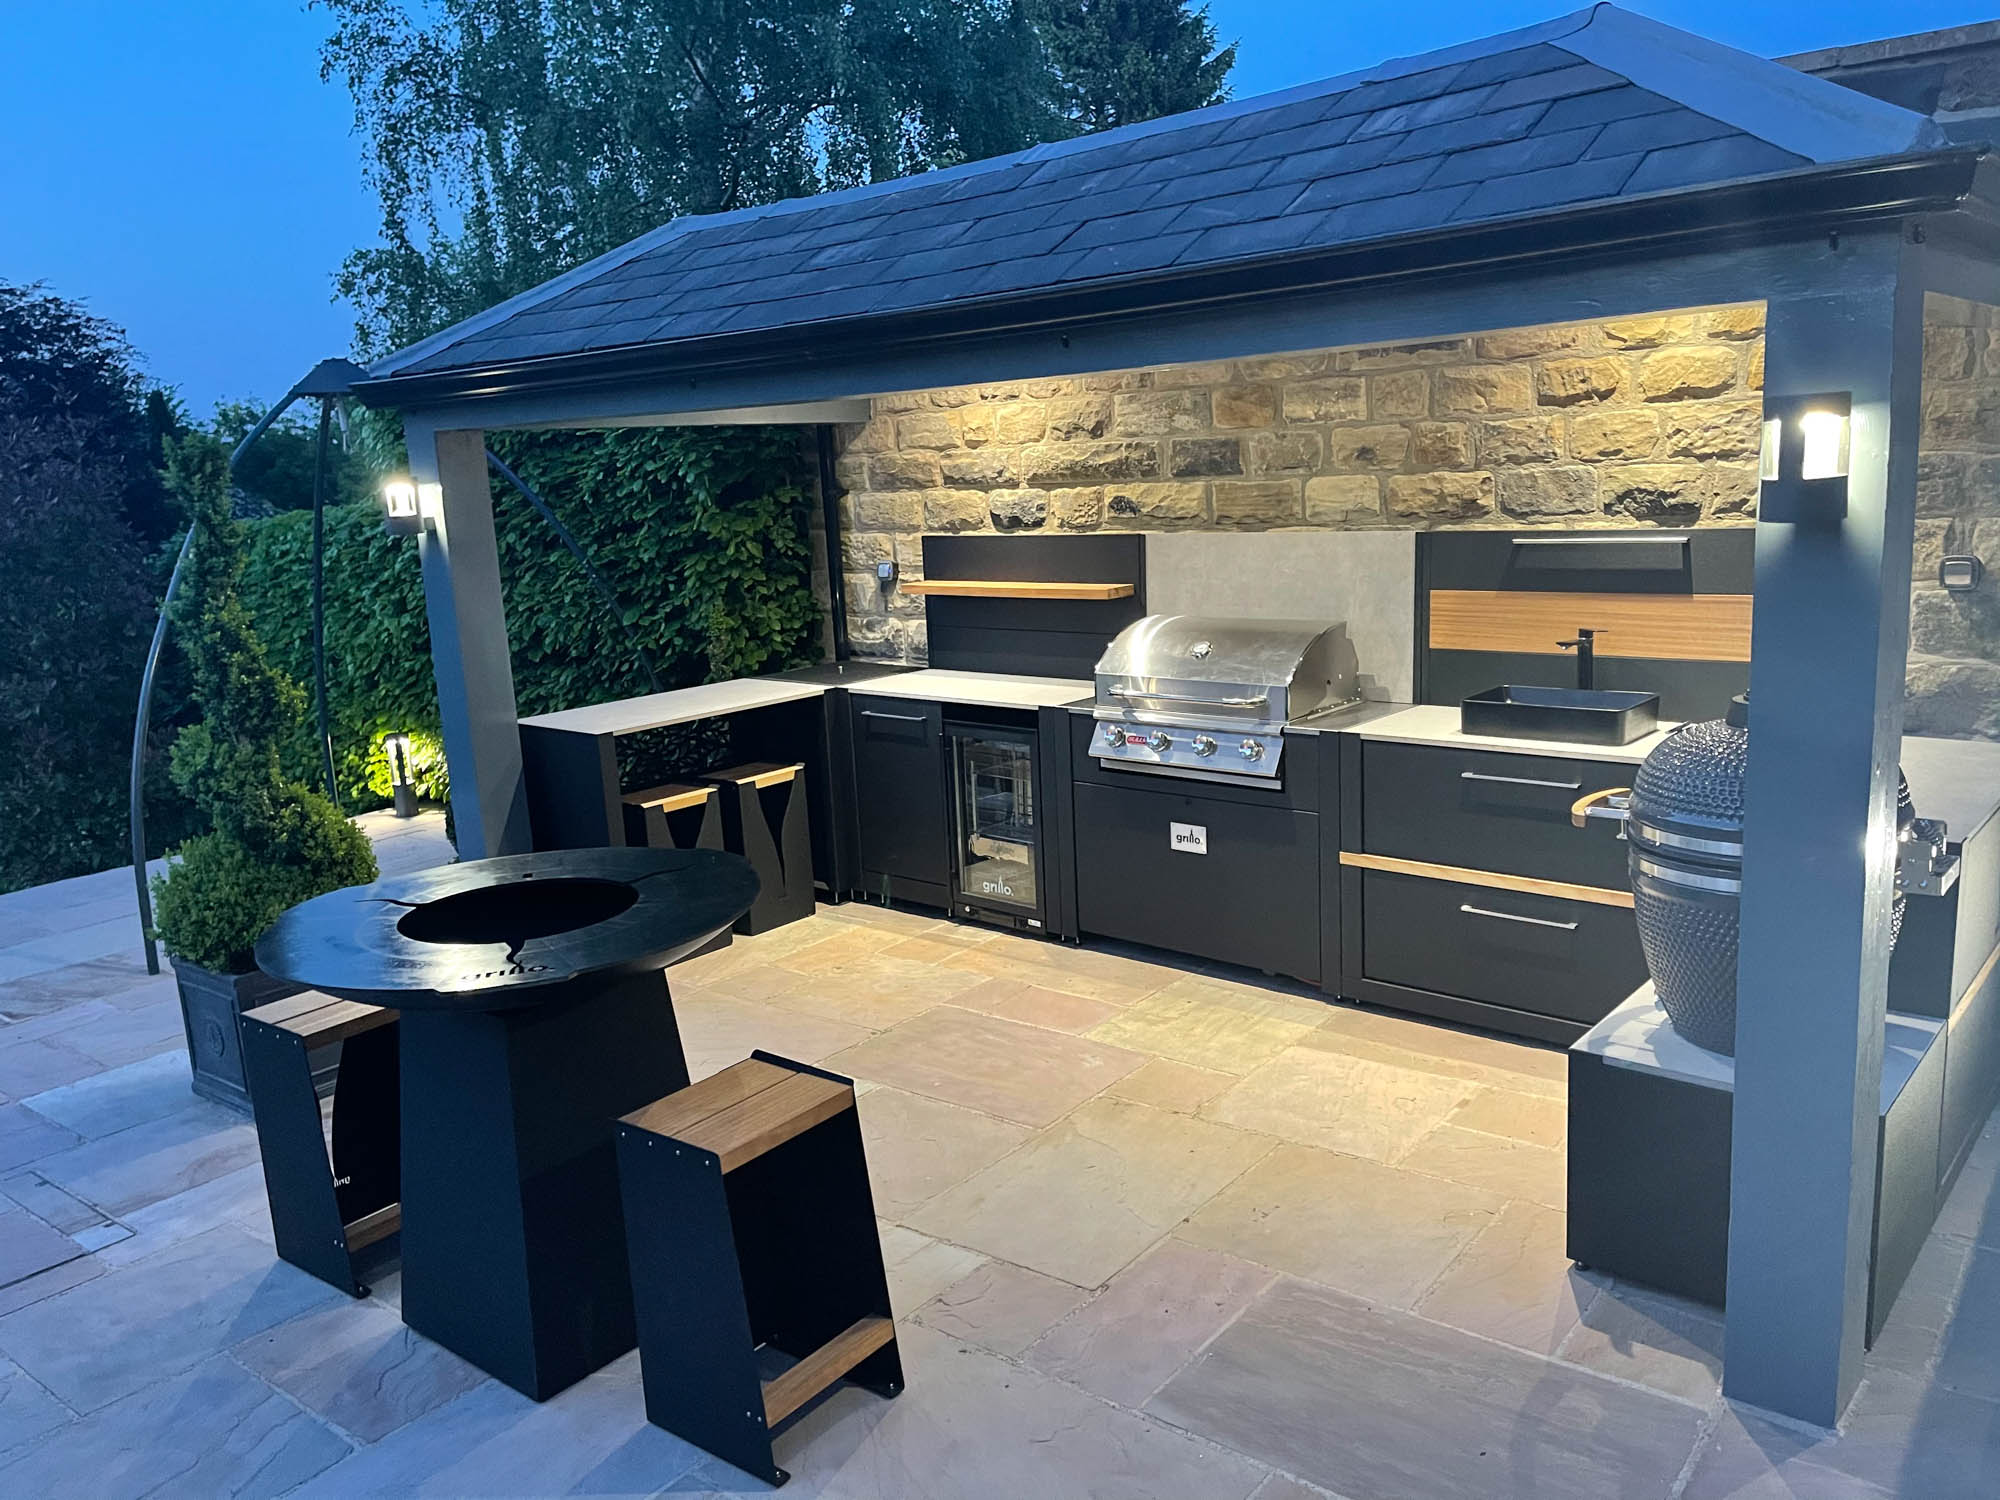 Competition Vantage Gas BBQ Anvil Gusto Bar Sheffield